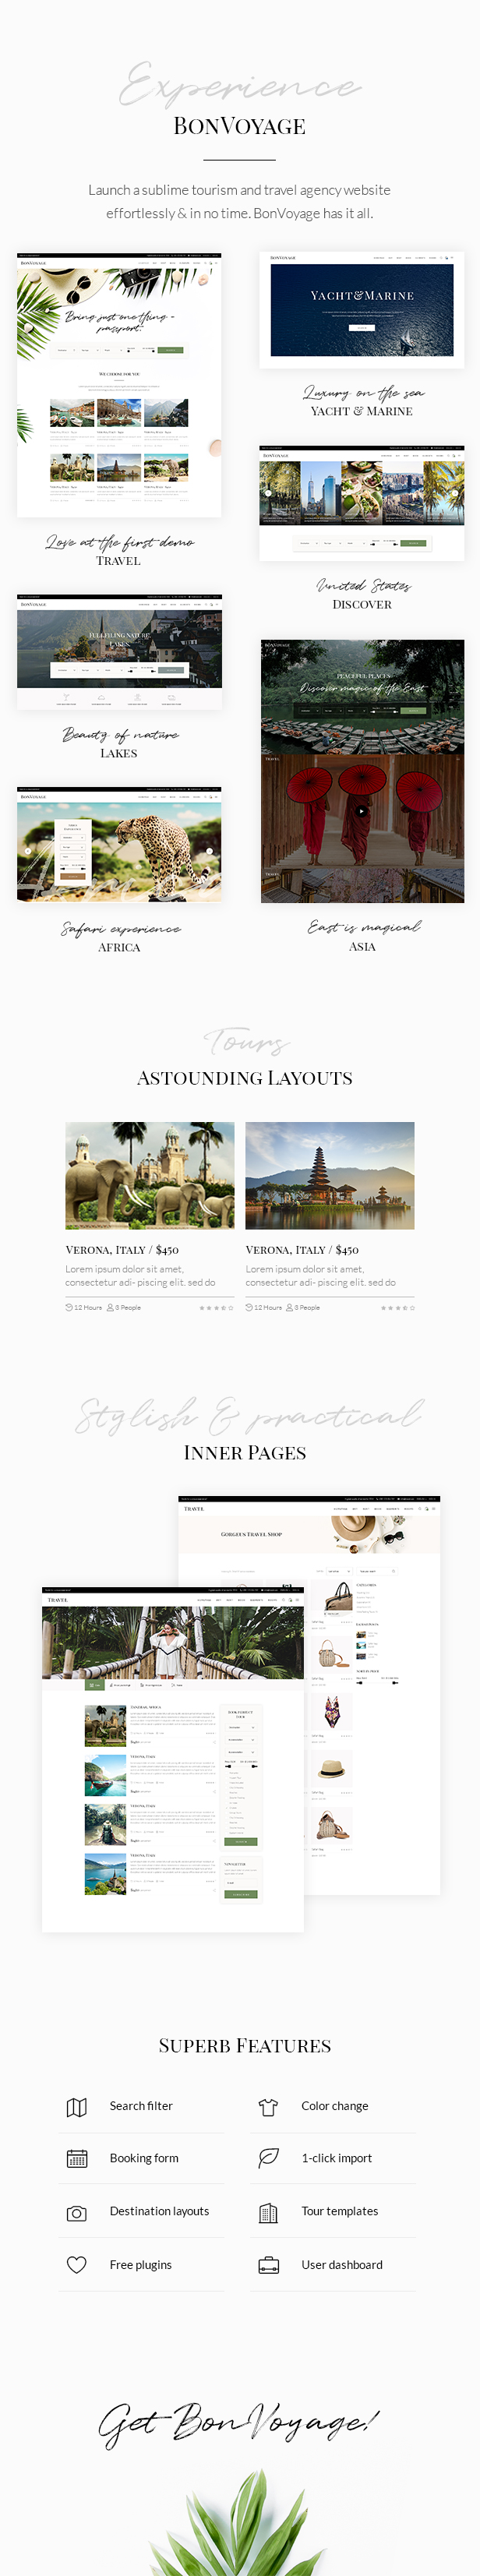 BonVoyage - Travel Agency and Tour Theme - 1